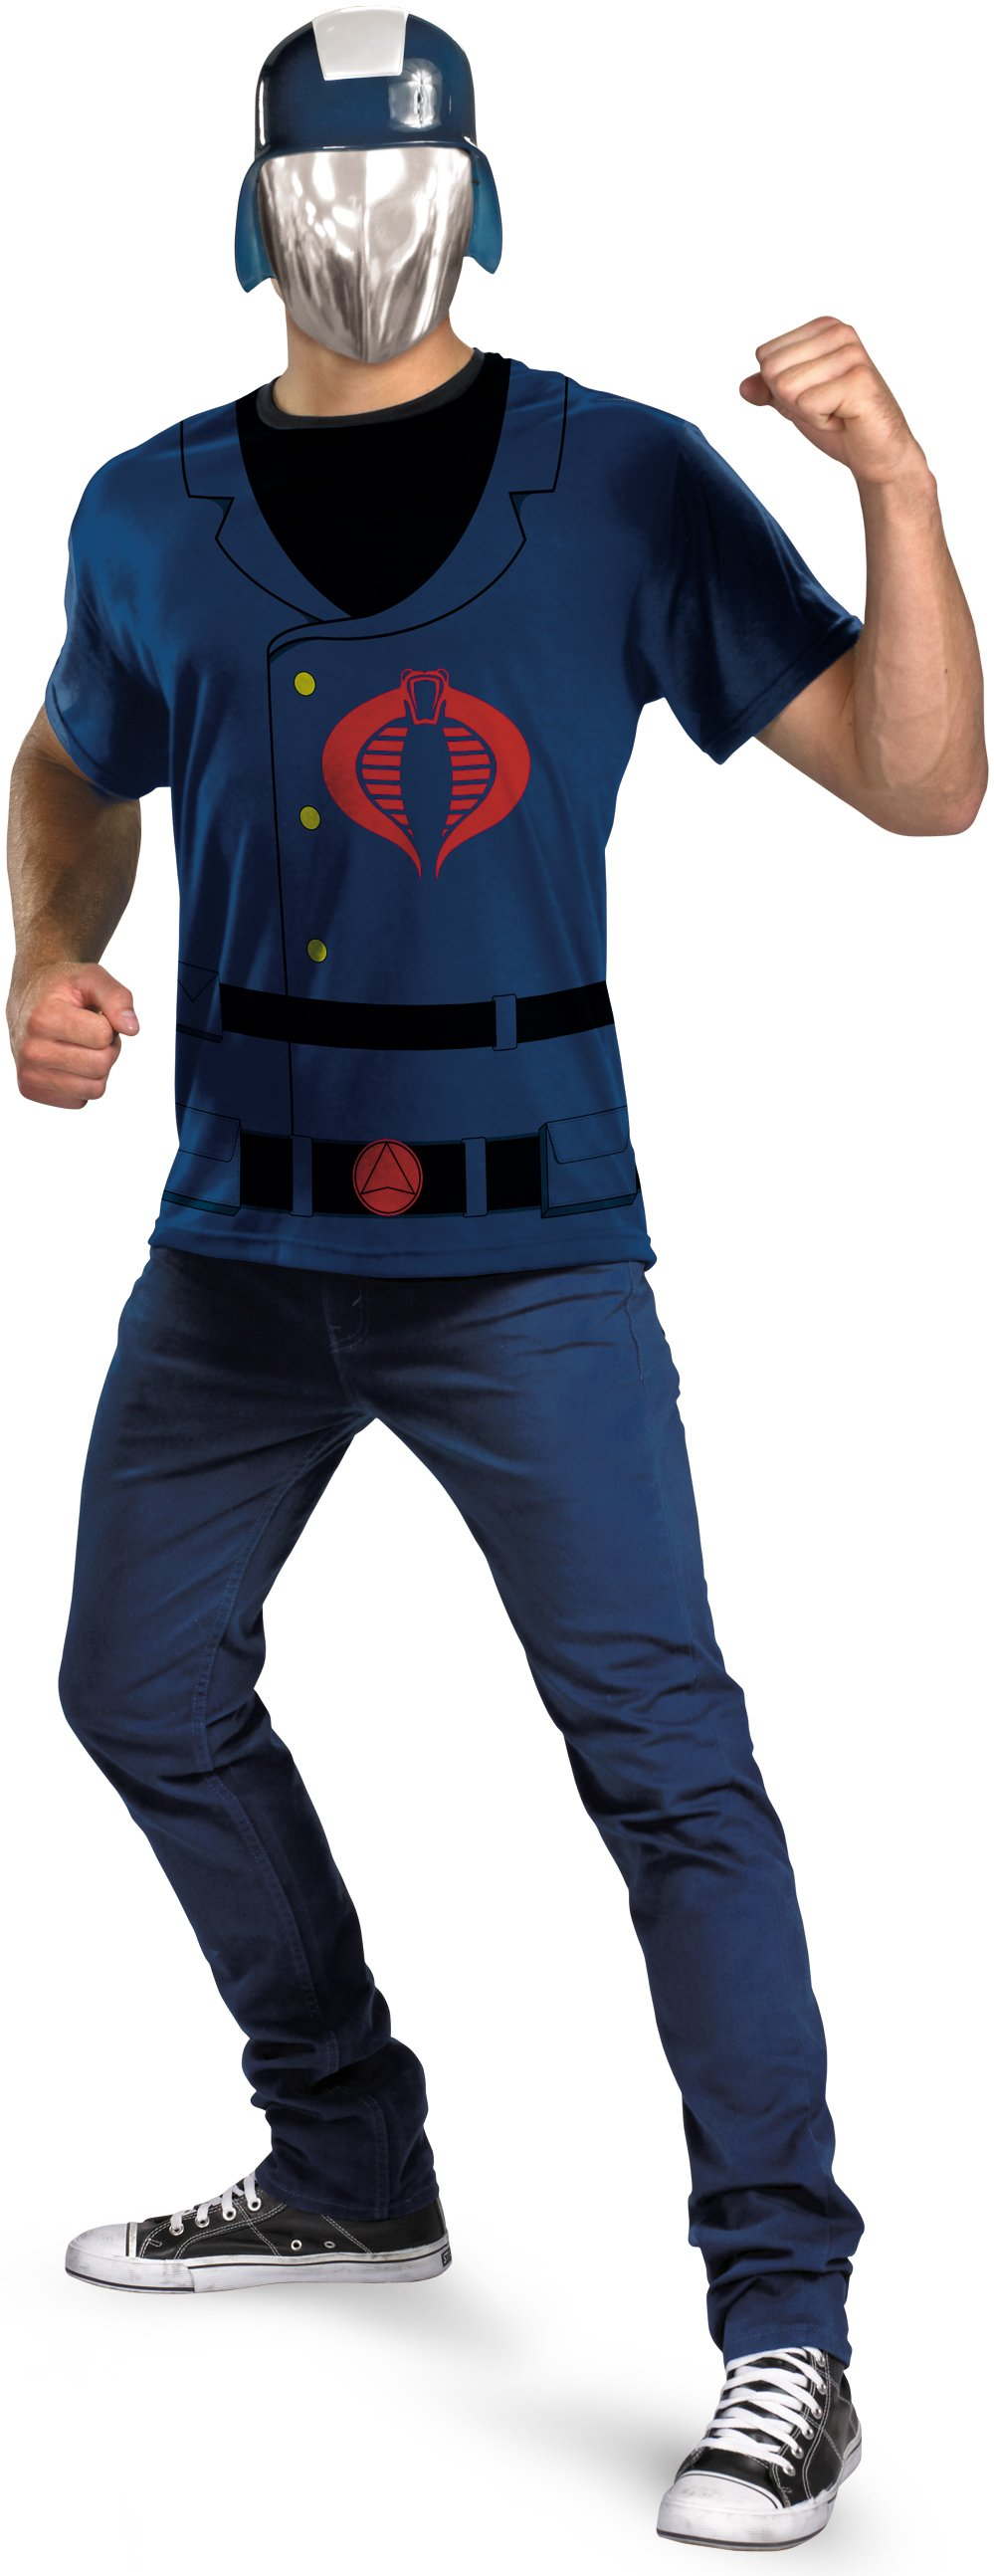 G.I. Joe - Cobra Commander T-Shirt And Mask Costume Set